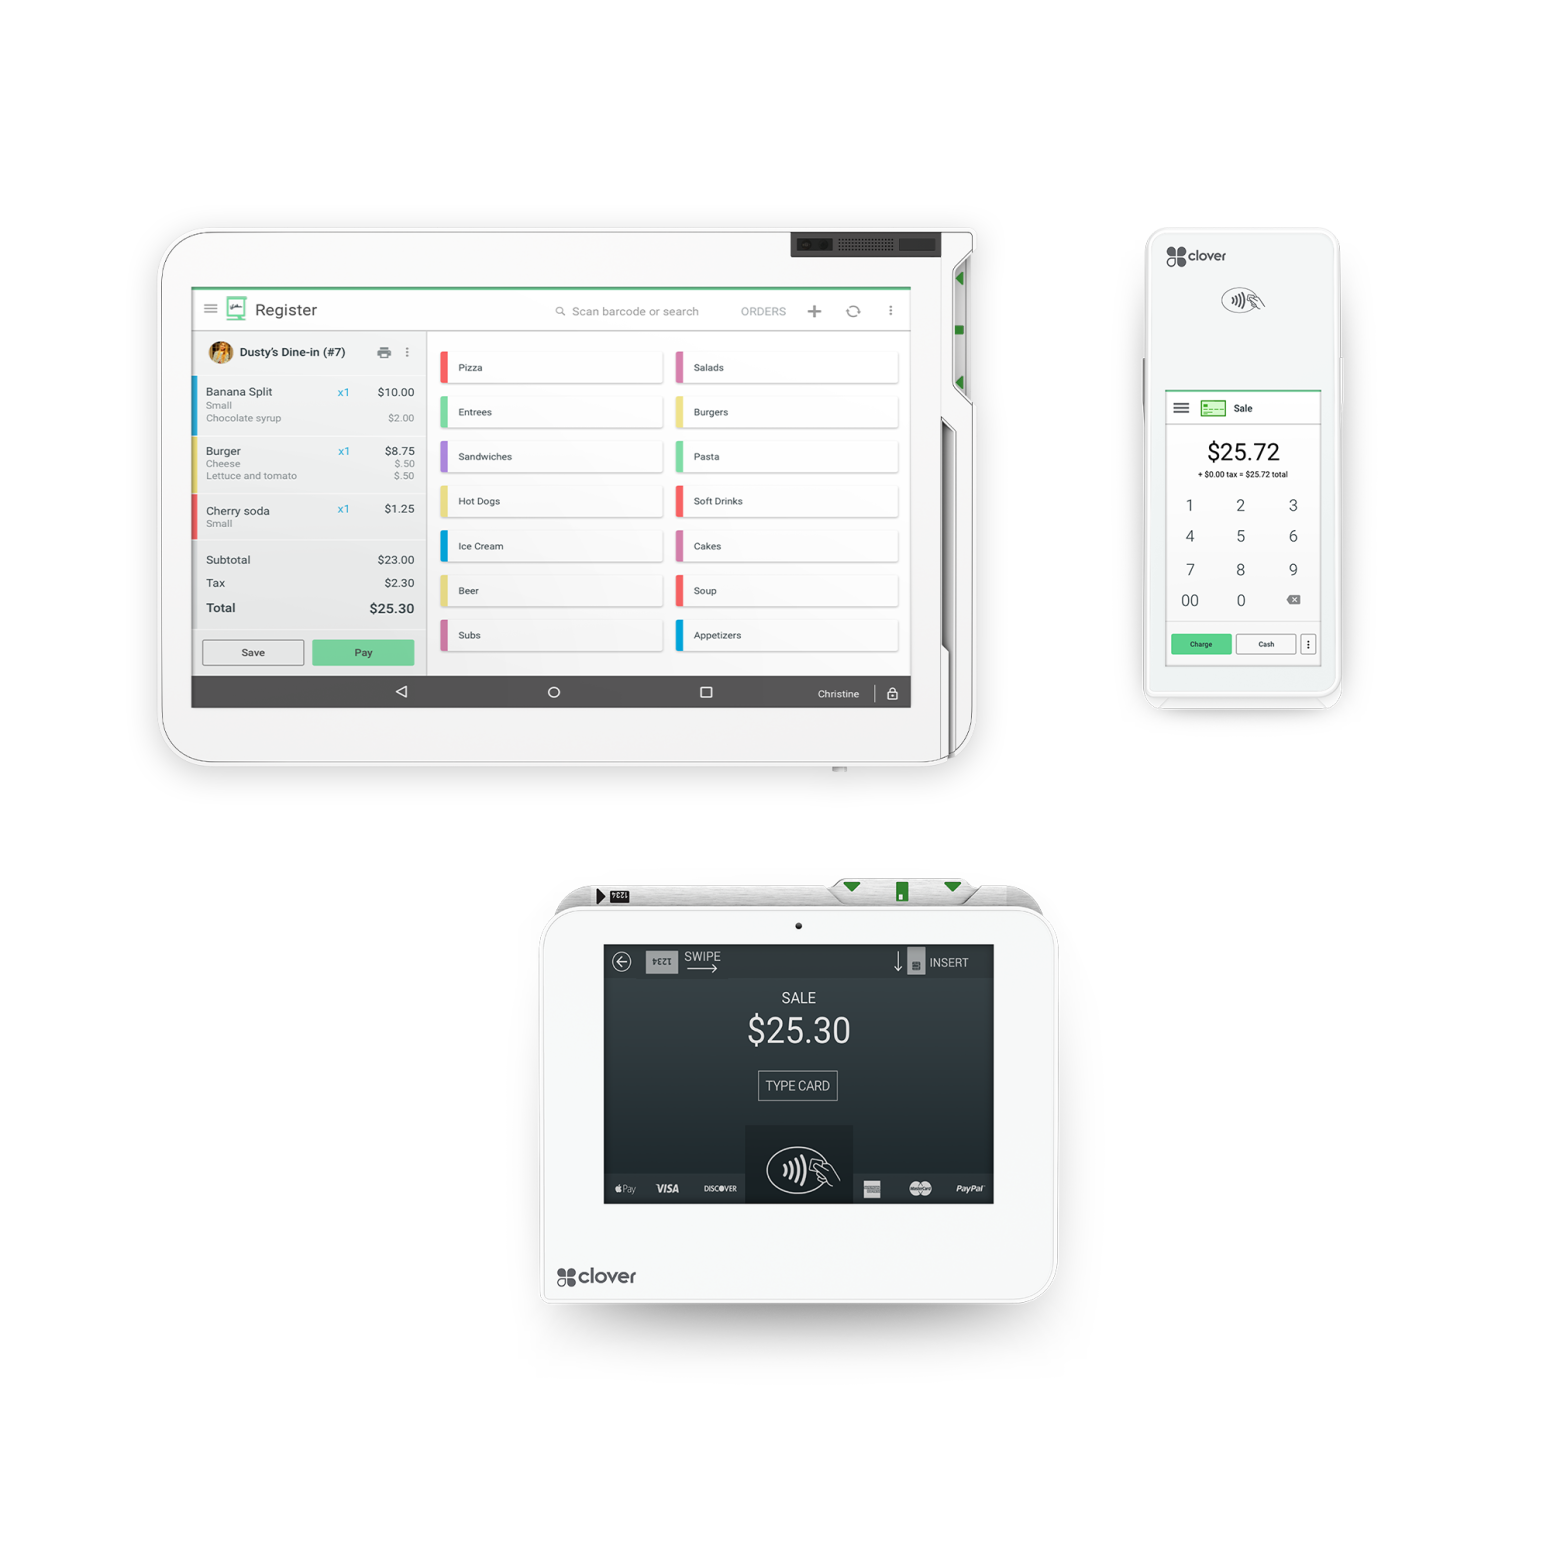 pos-clover-devices-station-mini-flex-customize-your-system-v4.png